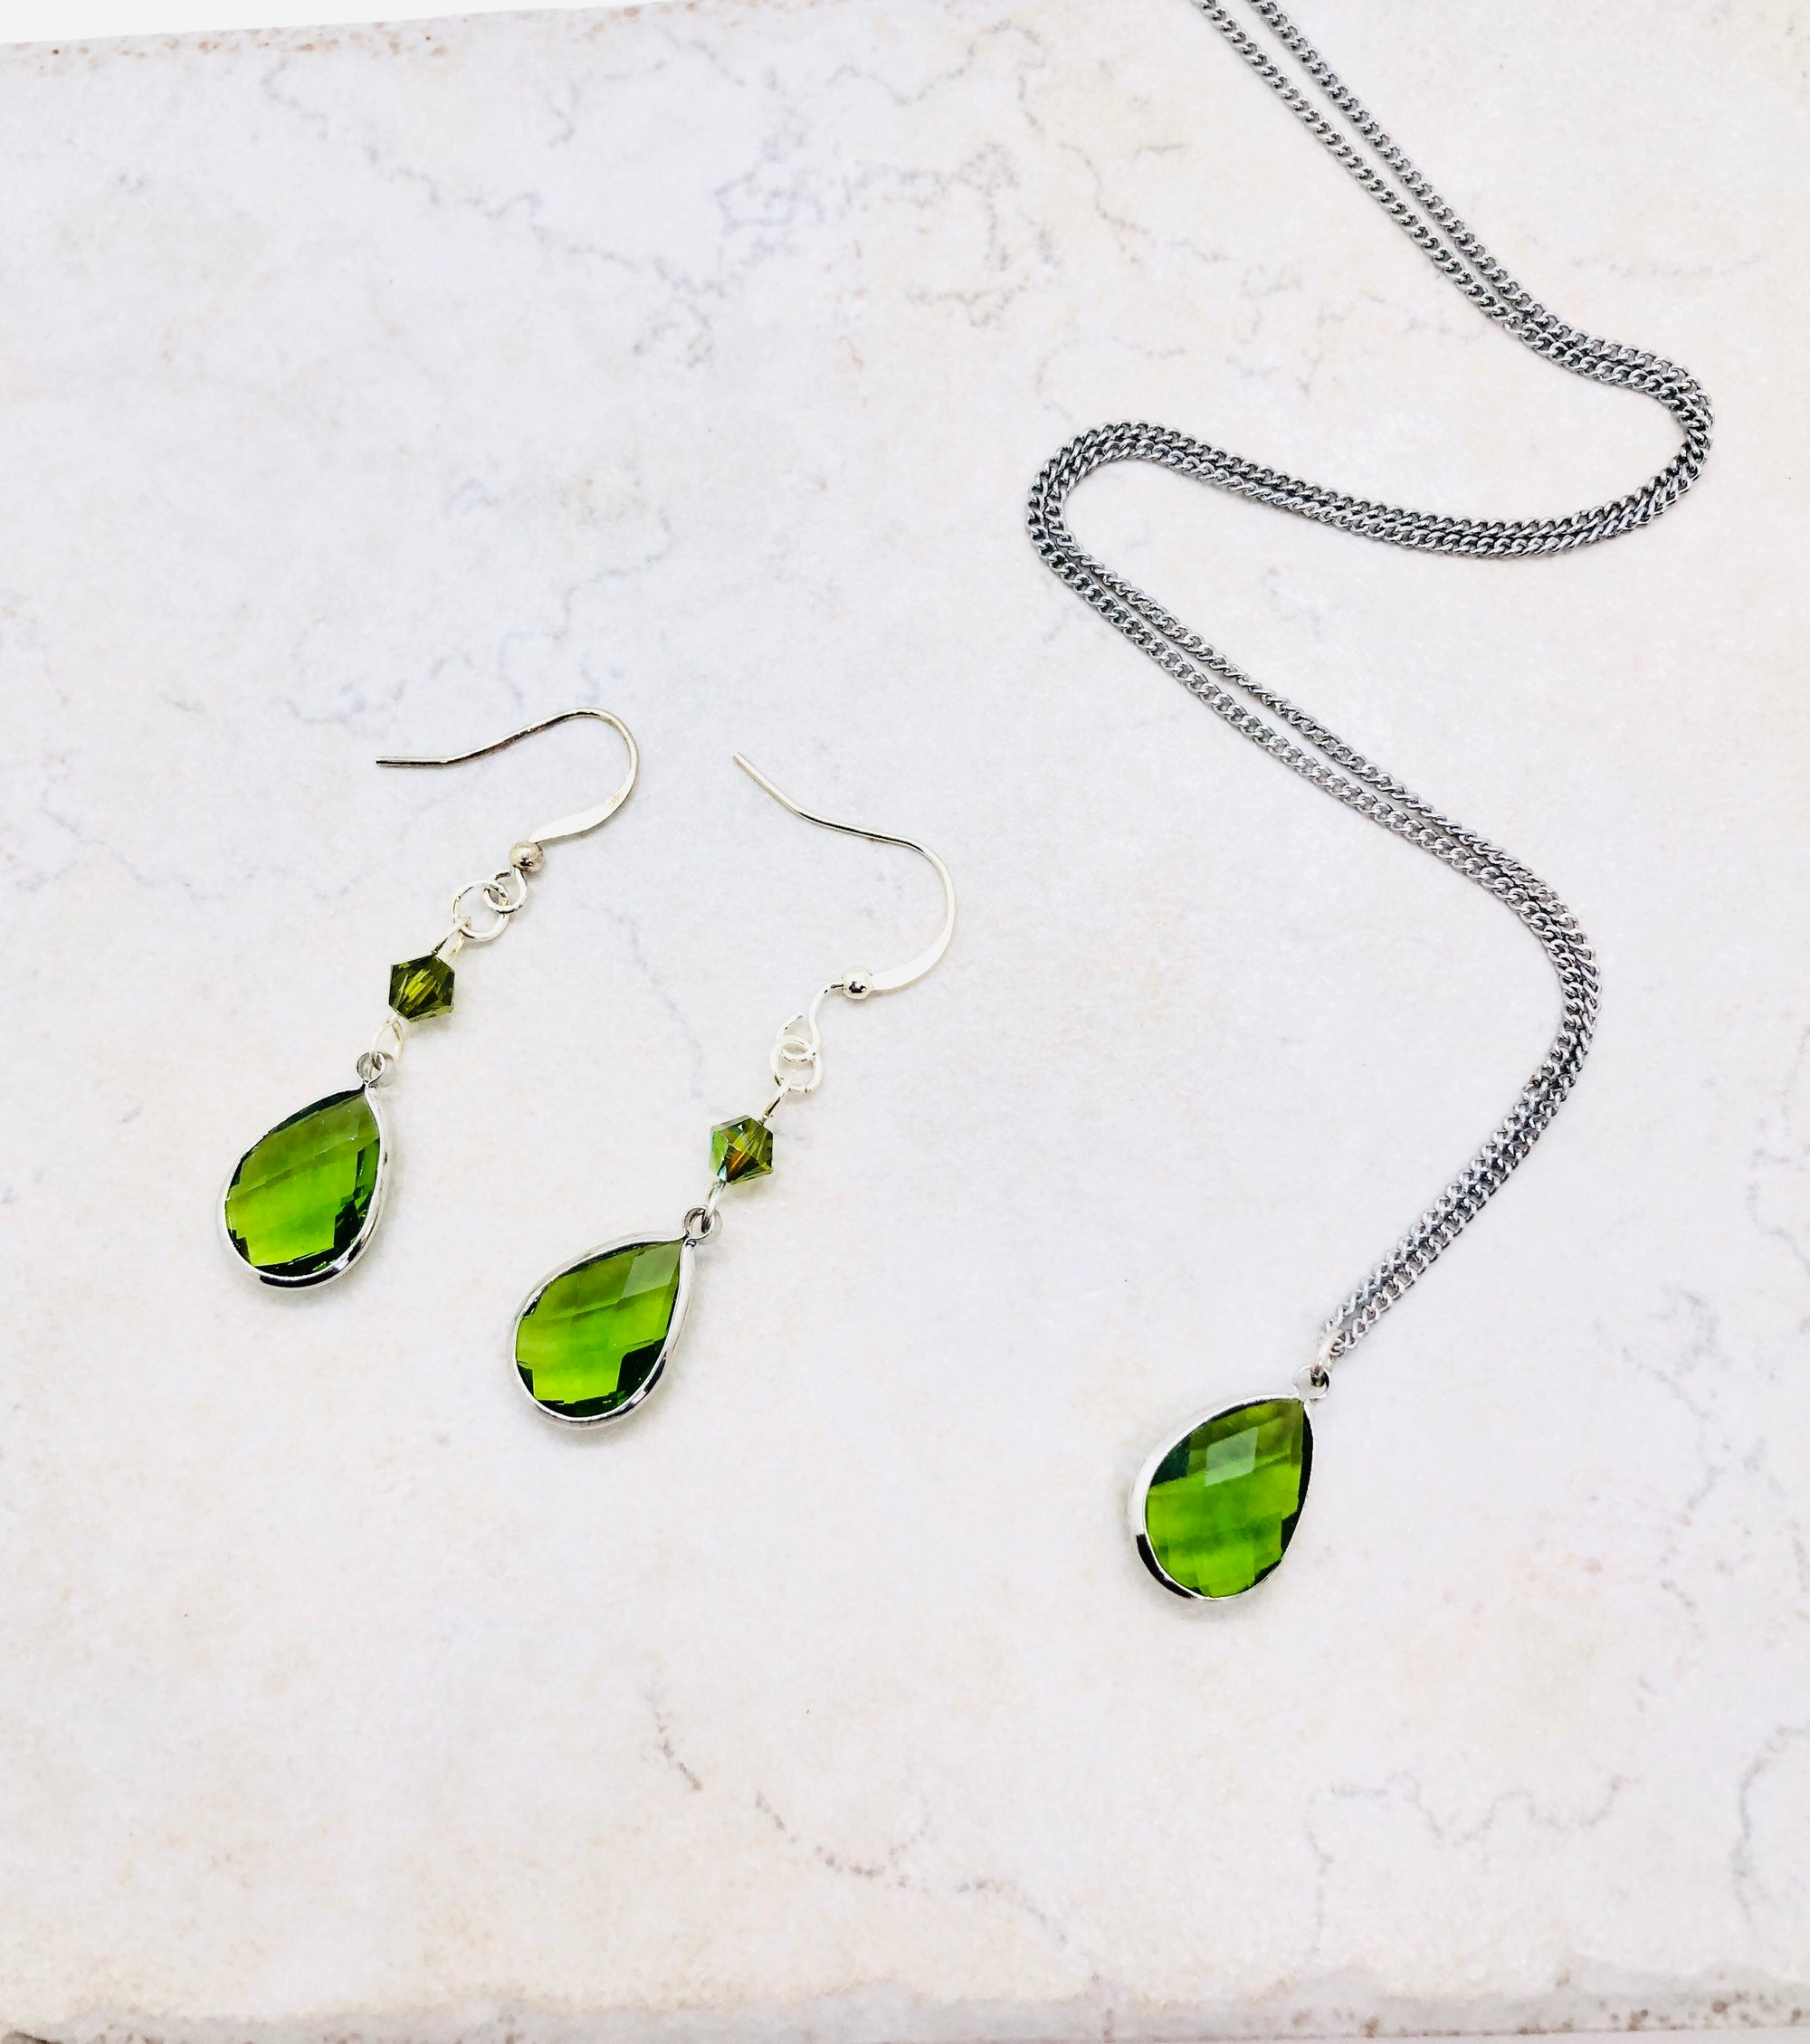 August jewelry, quarantine birthday gift for her sweet 16 gift for granddaughter, August birthstone necklace for mom peridot earrings dangle